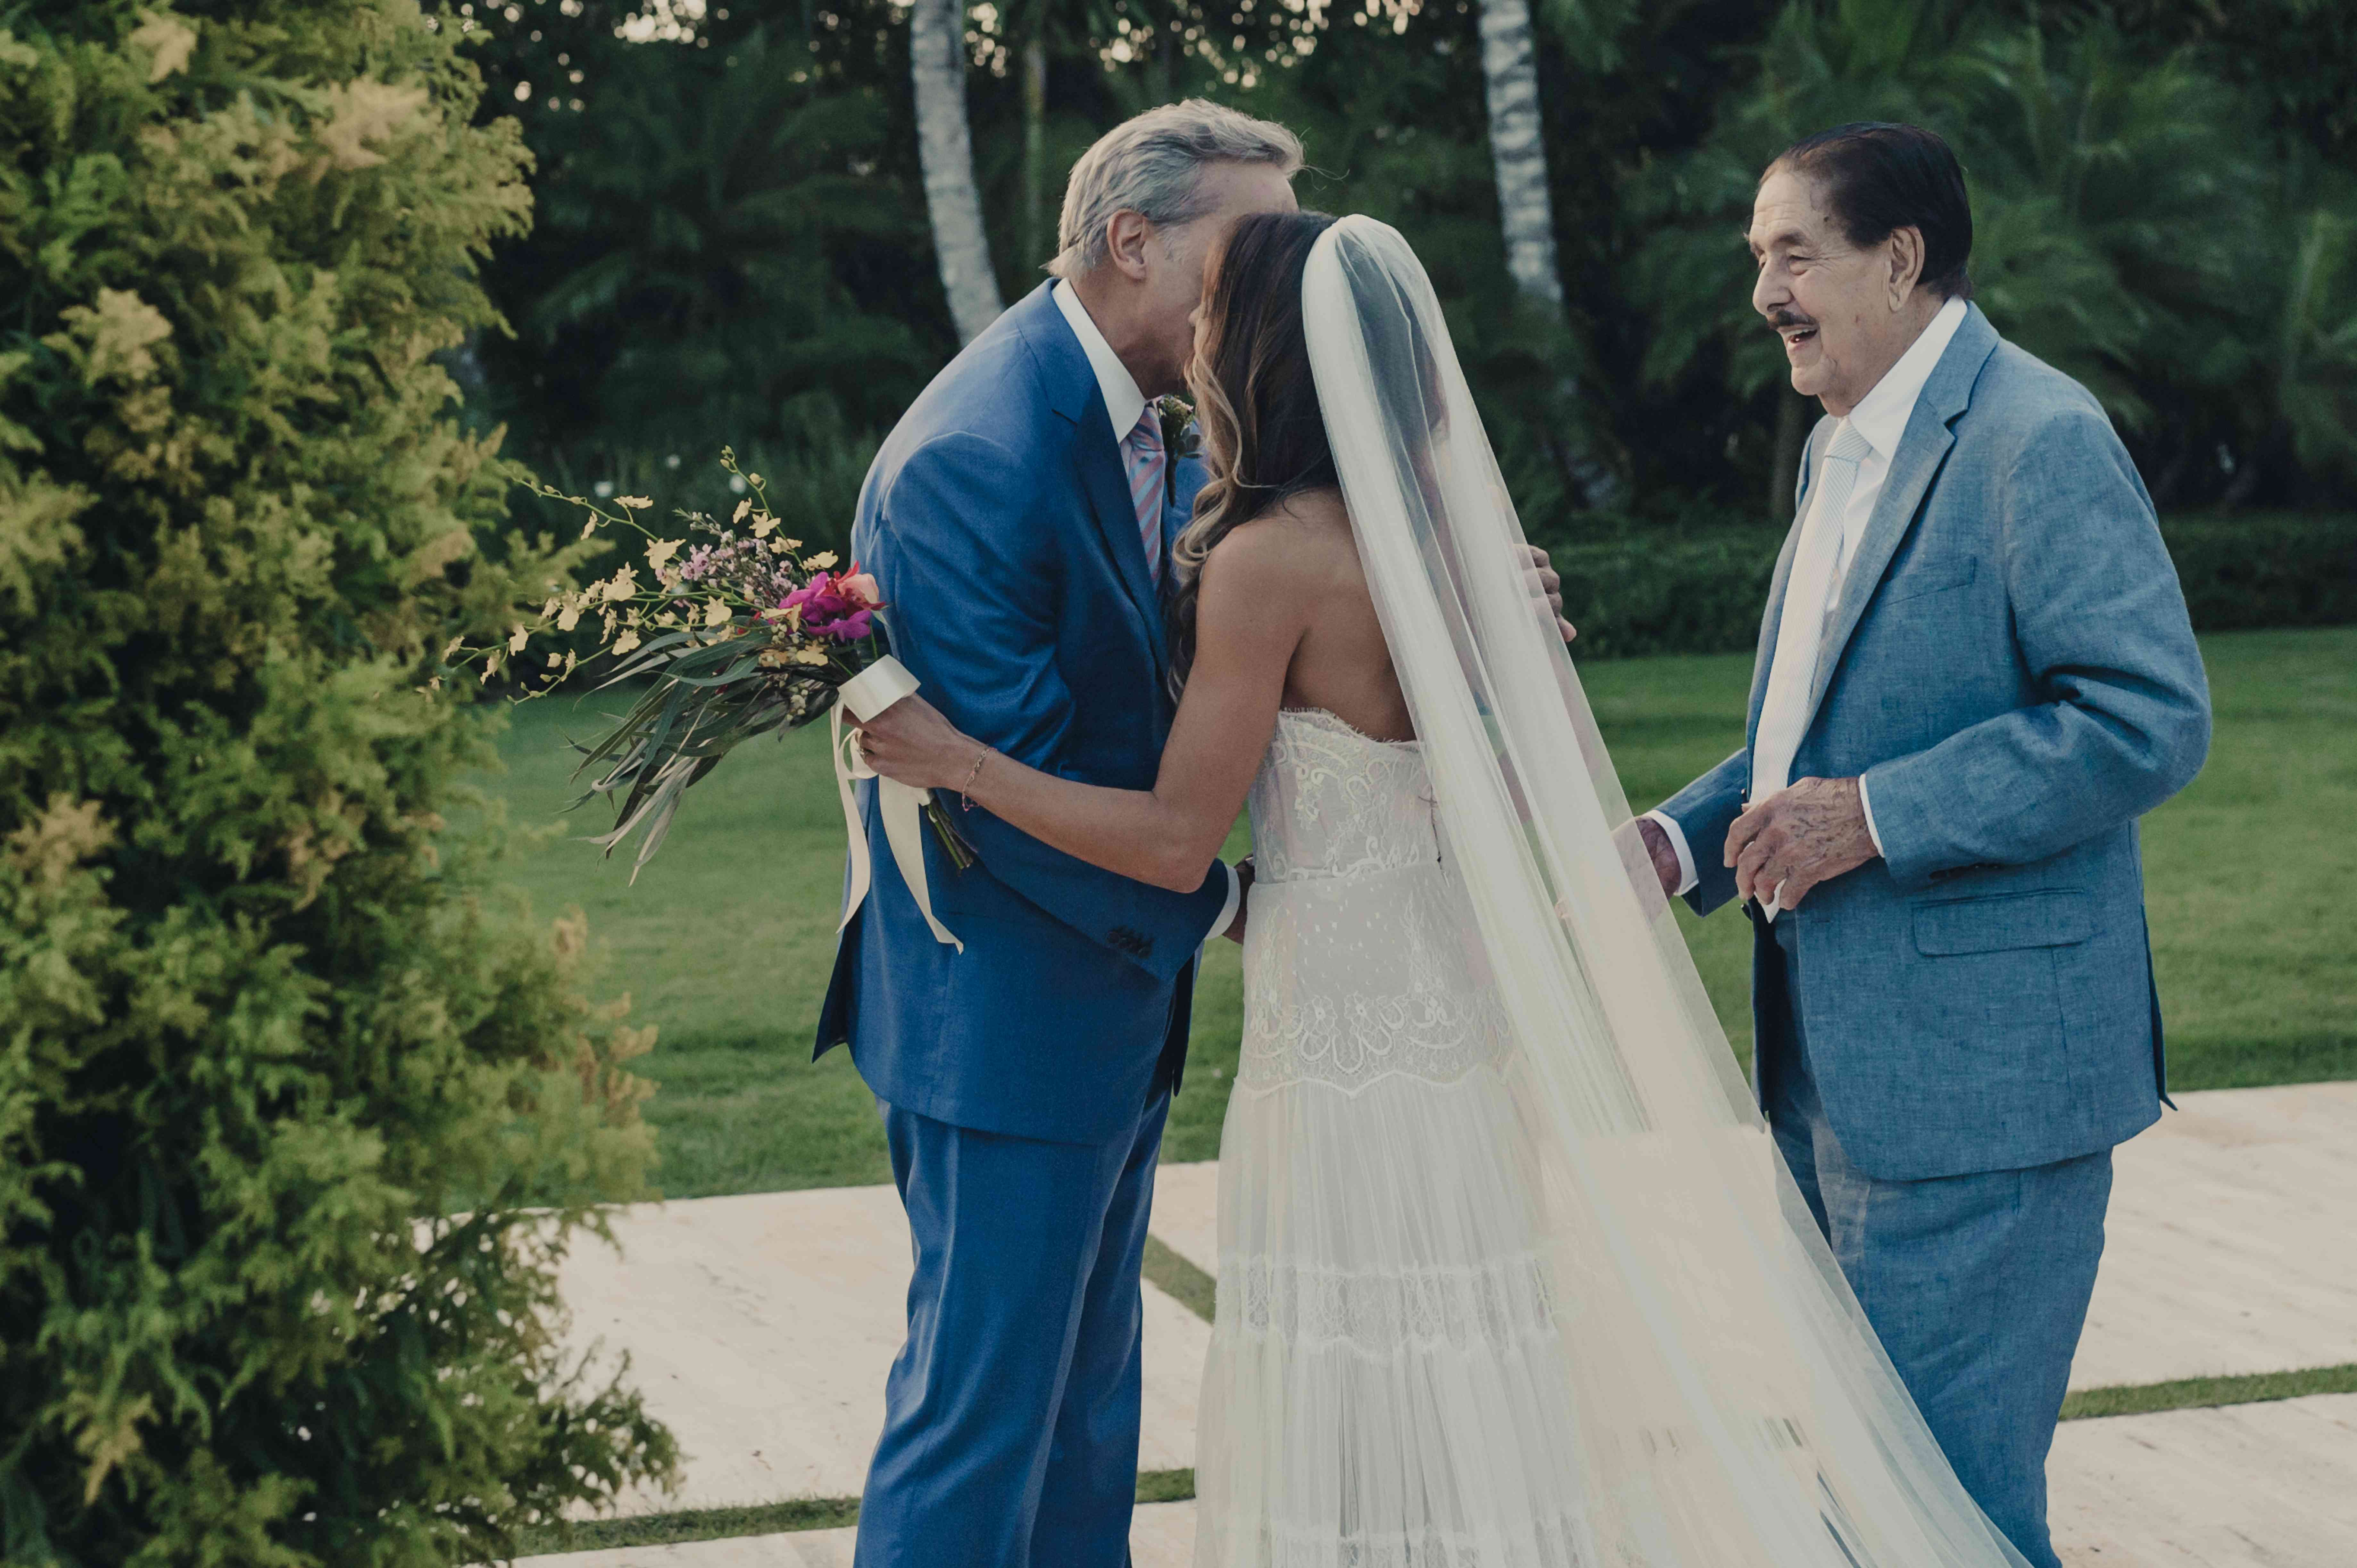 grandfather and father walking bride down aisle